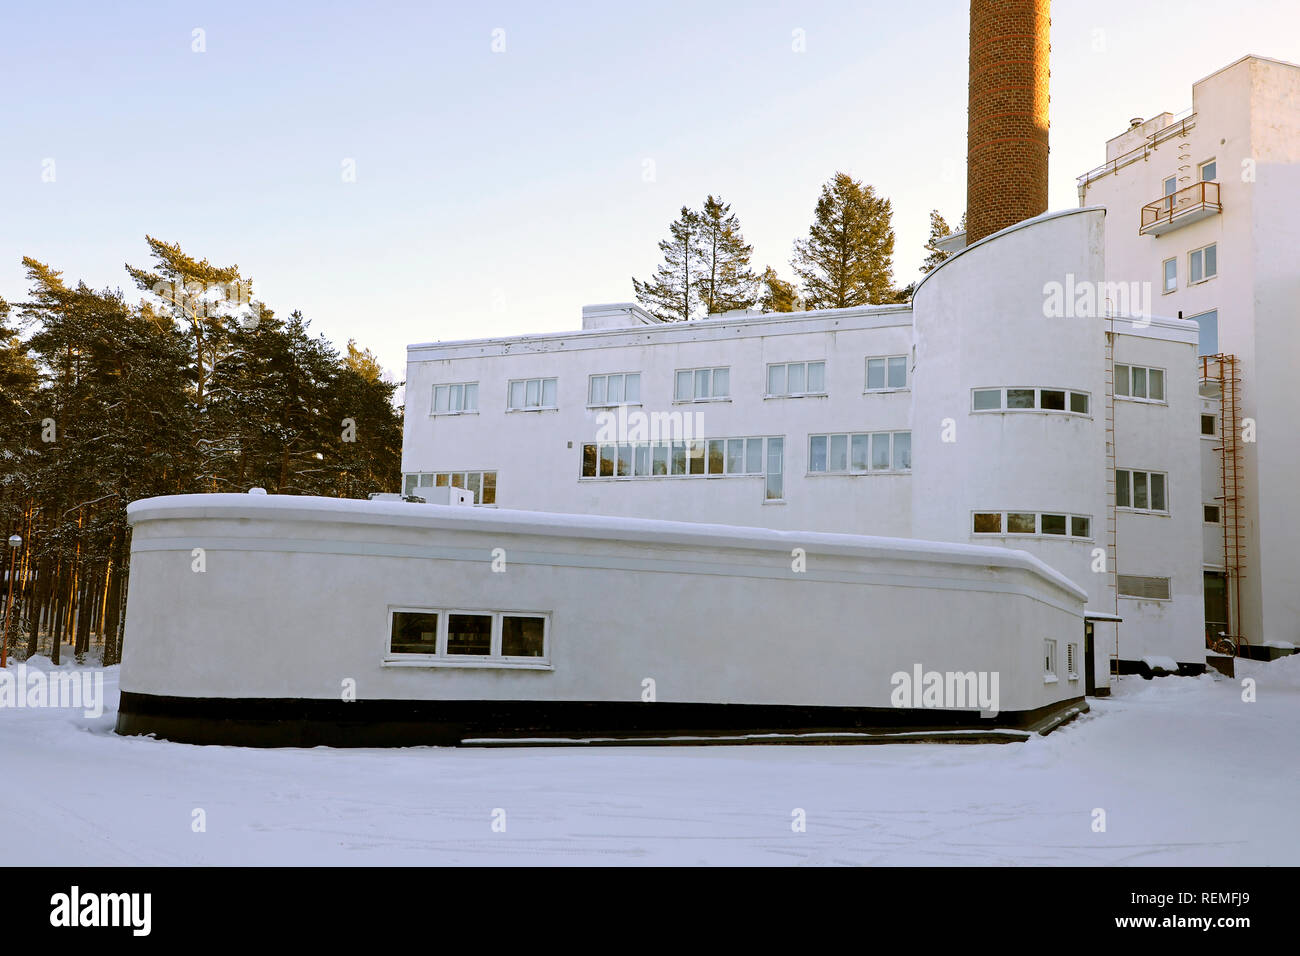 Paimio Sanatorium, the kitchen and maintenance wing. Designed by Finnish architect Alvar Aalto, completed in 1933. Paimio, Finland. January 20, 2019. - Stock Image